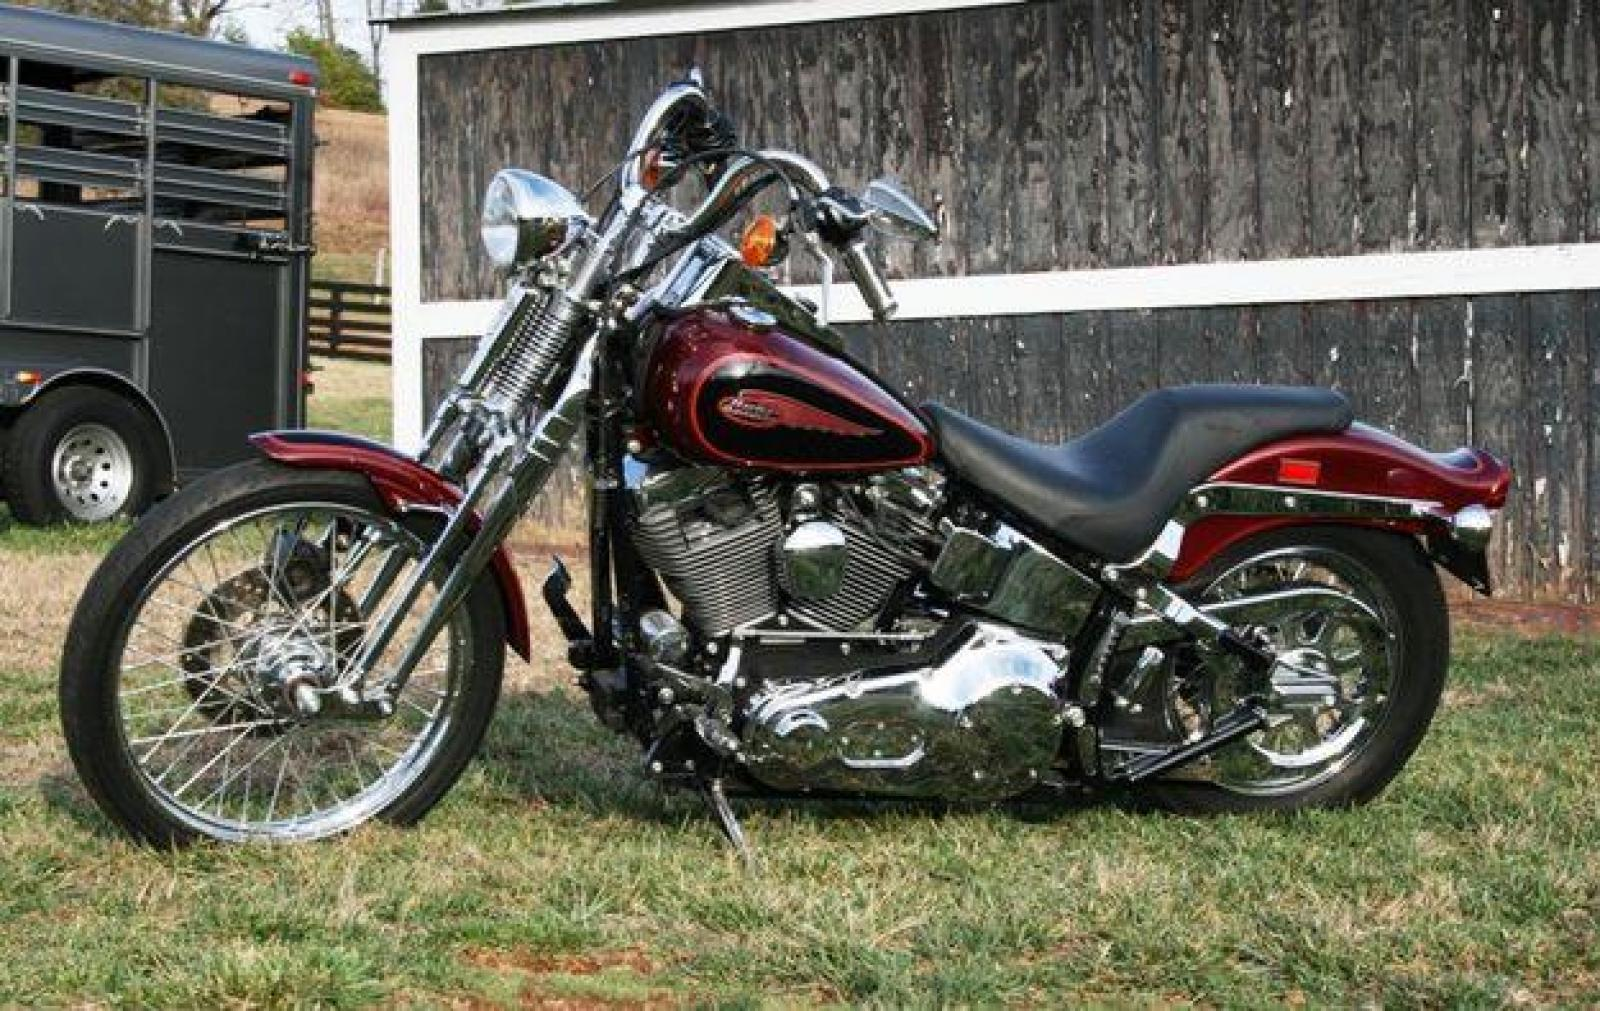 Showthread furthermore Shovelhead Handlebar Wiring Diagram also Showthread besides 1990 Softail Wiring Diagram in addition 645192 Wiring Help Needed. on harley davidson electronic ignition wiring diagram